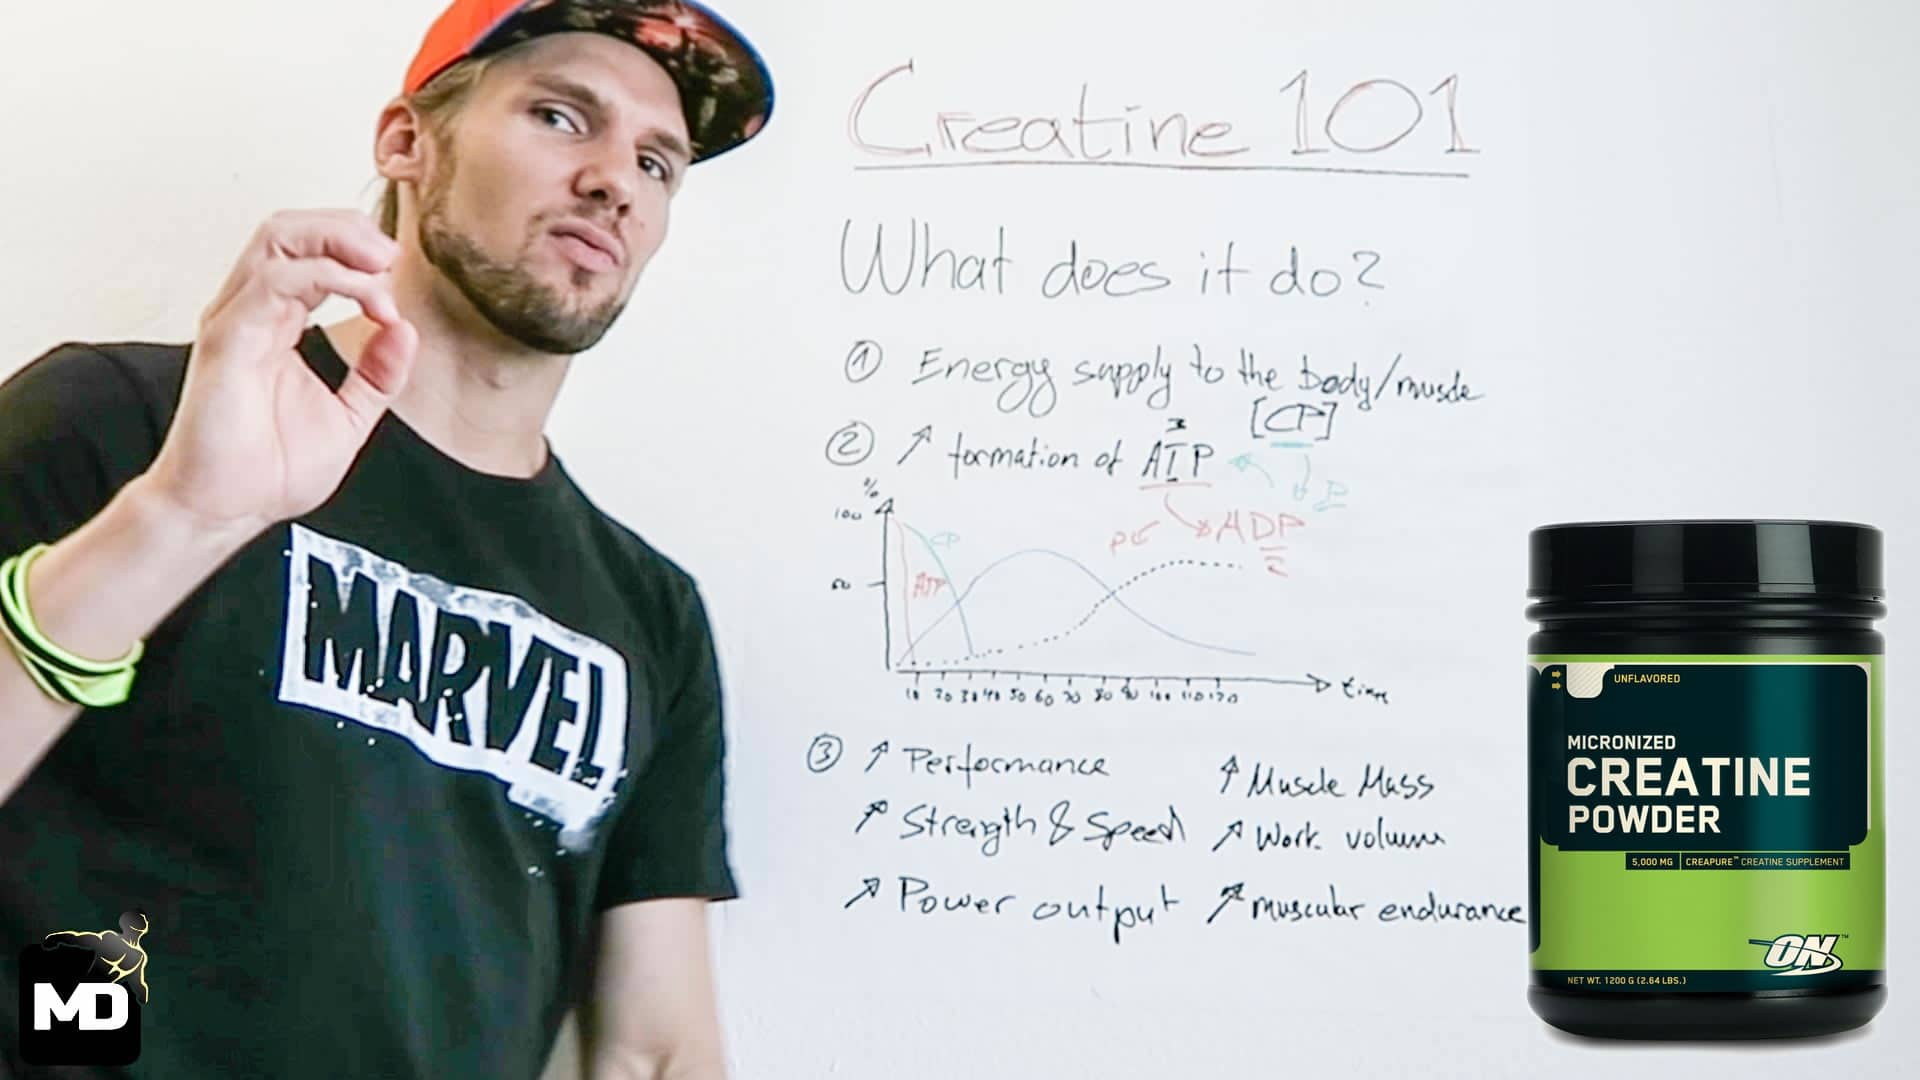 [Creatine 101] - What Is Creatine?